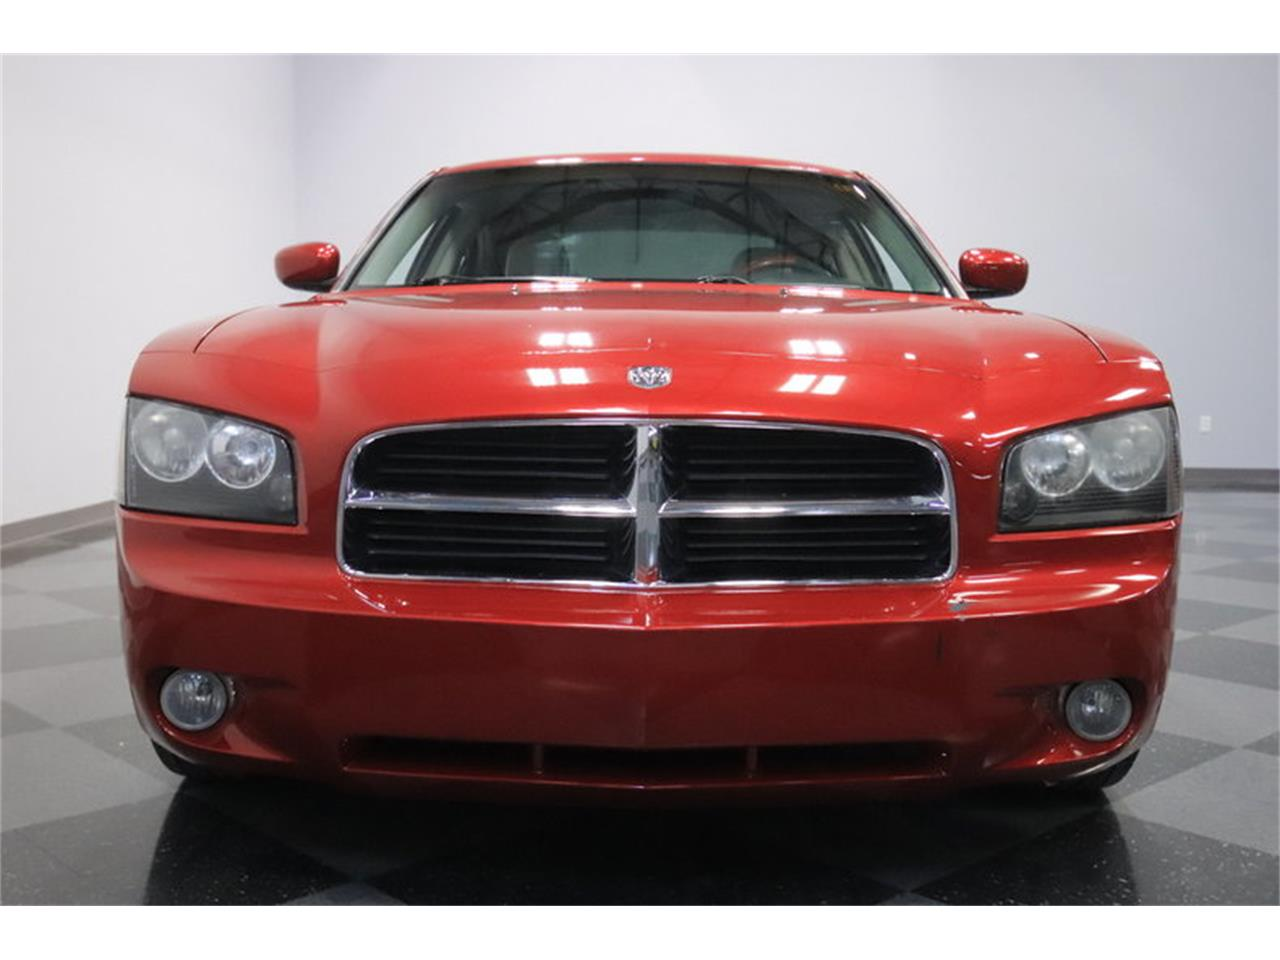 Large Picture of '06 Charger R/T located in Mesa Arizona - $8,995.00 - MZDF